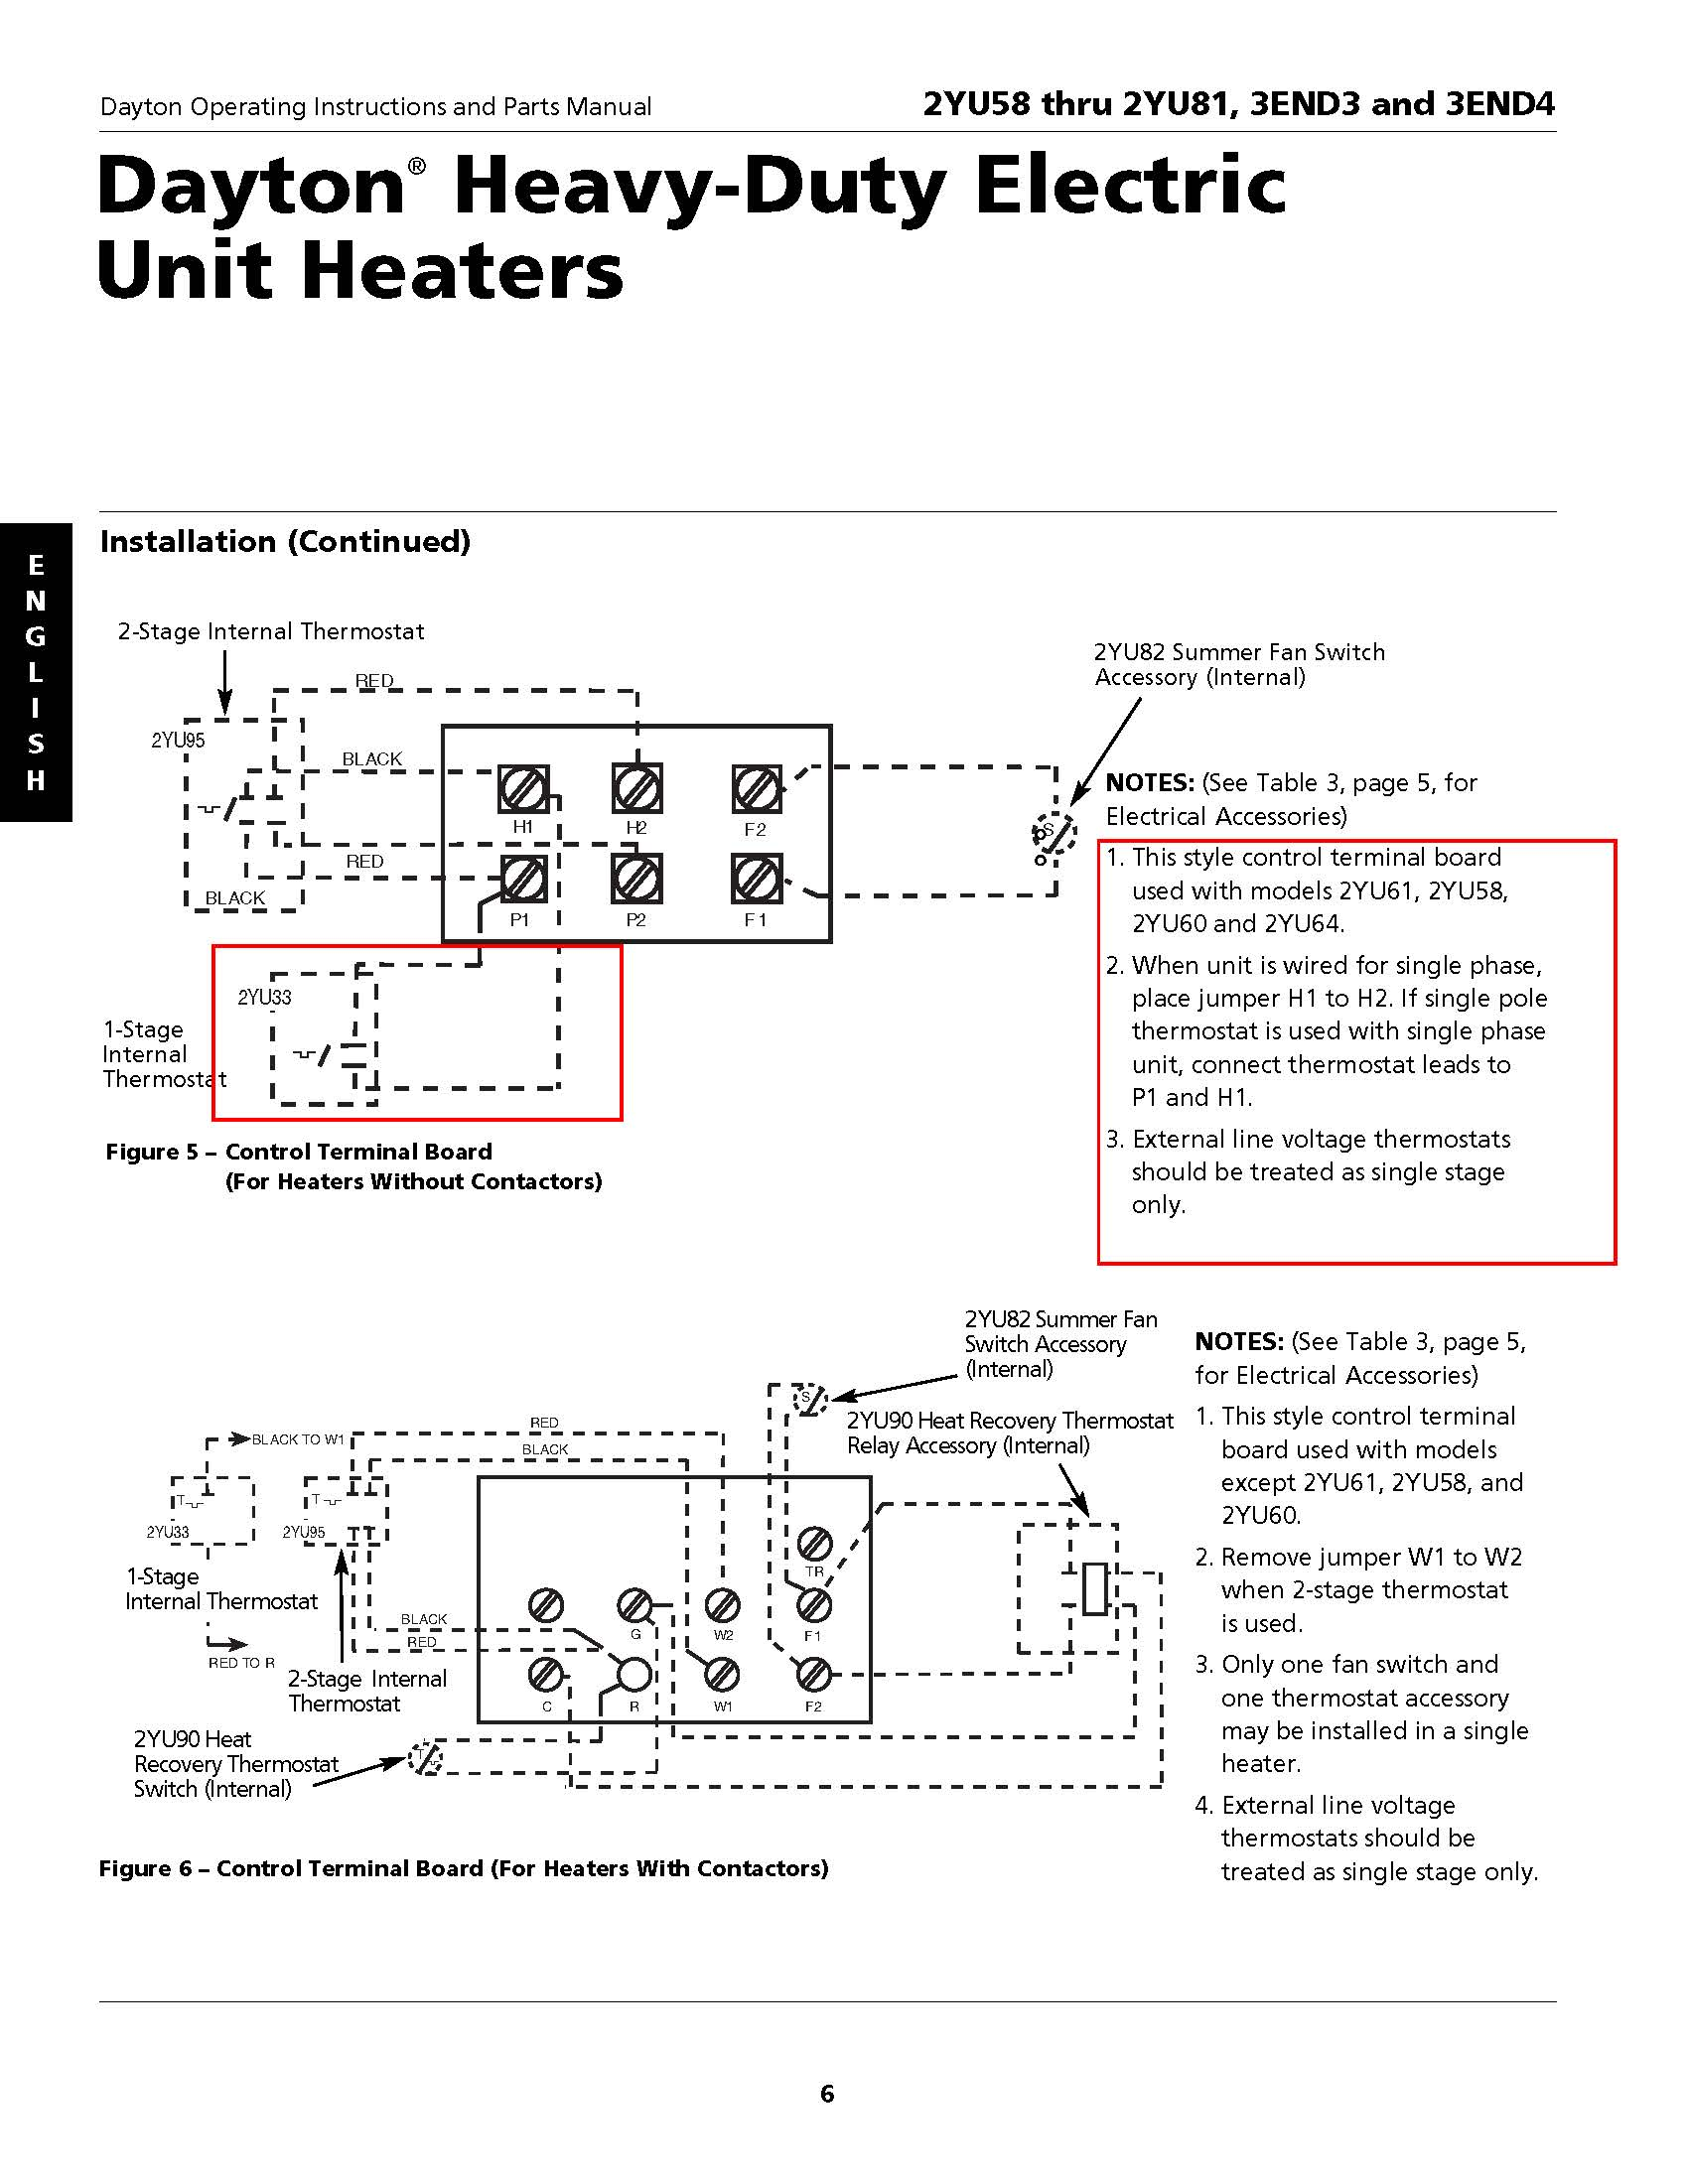 Honeywell Switching Relay Wiring Diagram R841e Trusted Diagrams R845a 1030 Is An External Thermostat Required Or Can The Unit Control Temps On